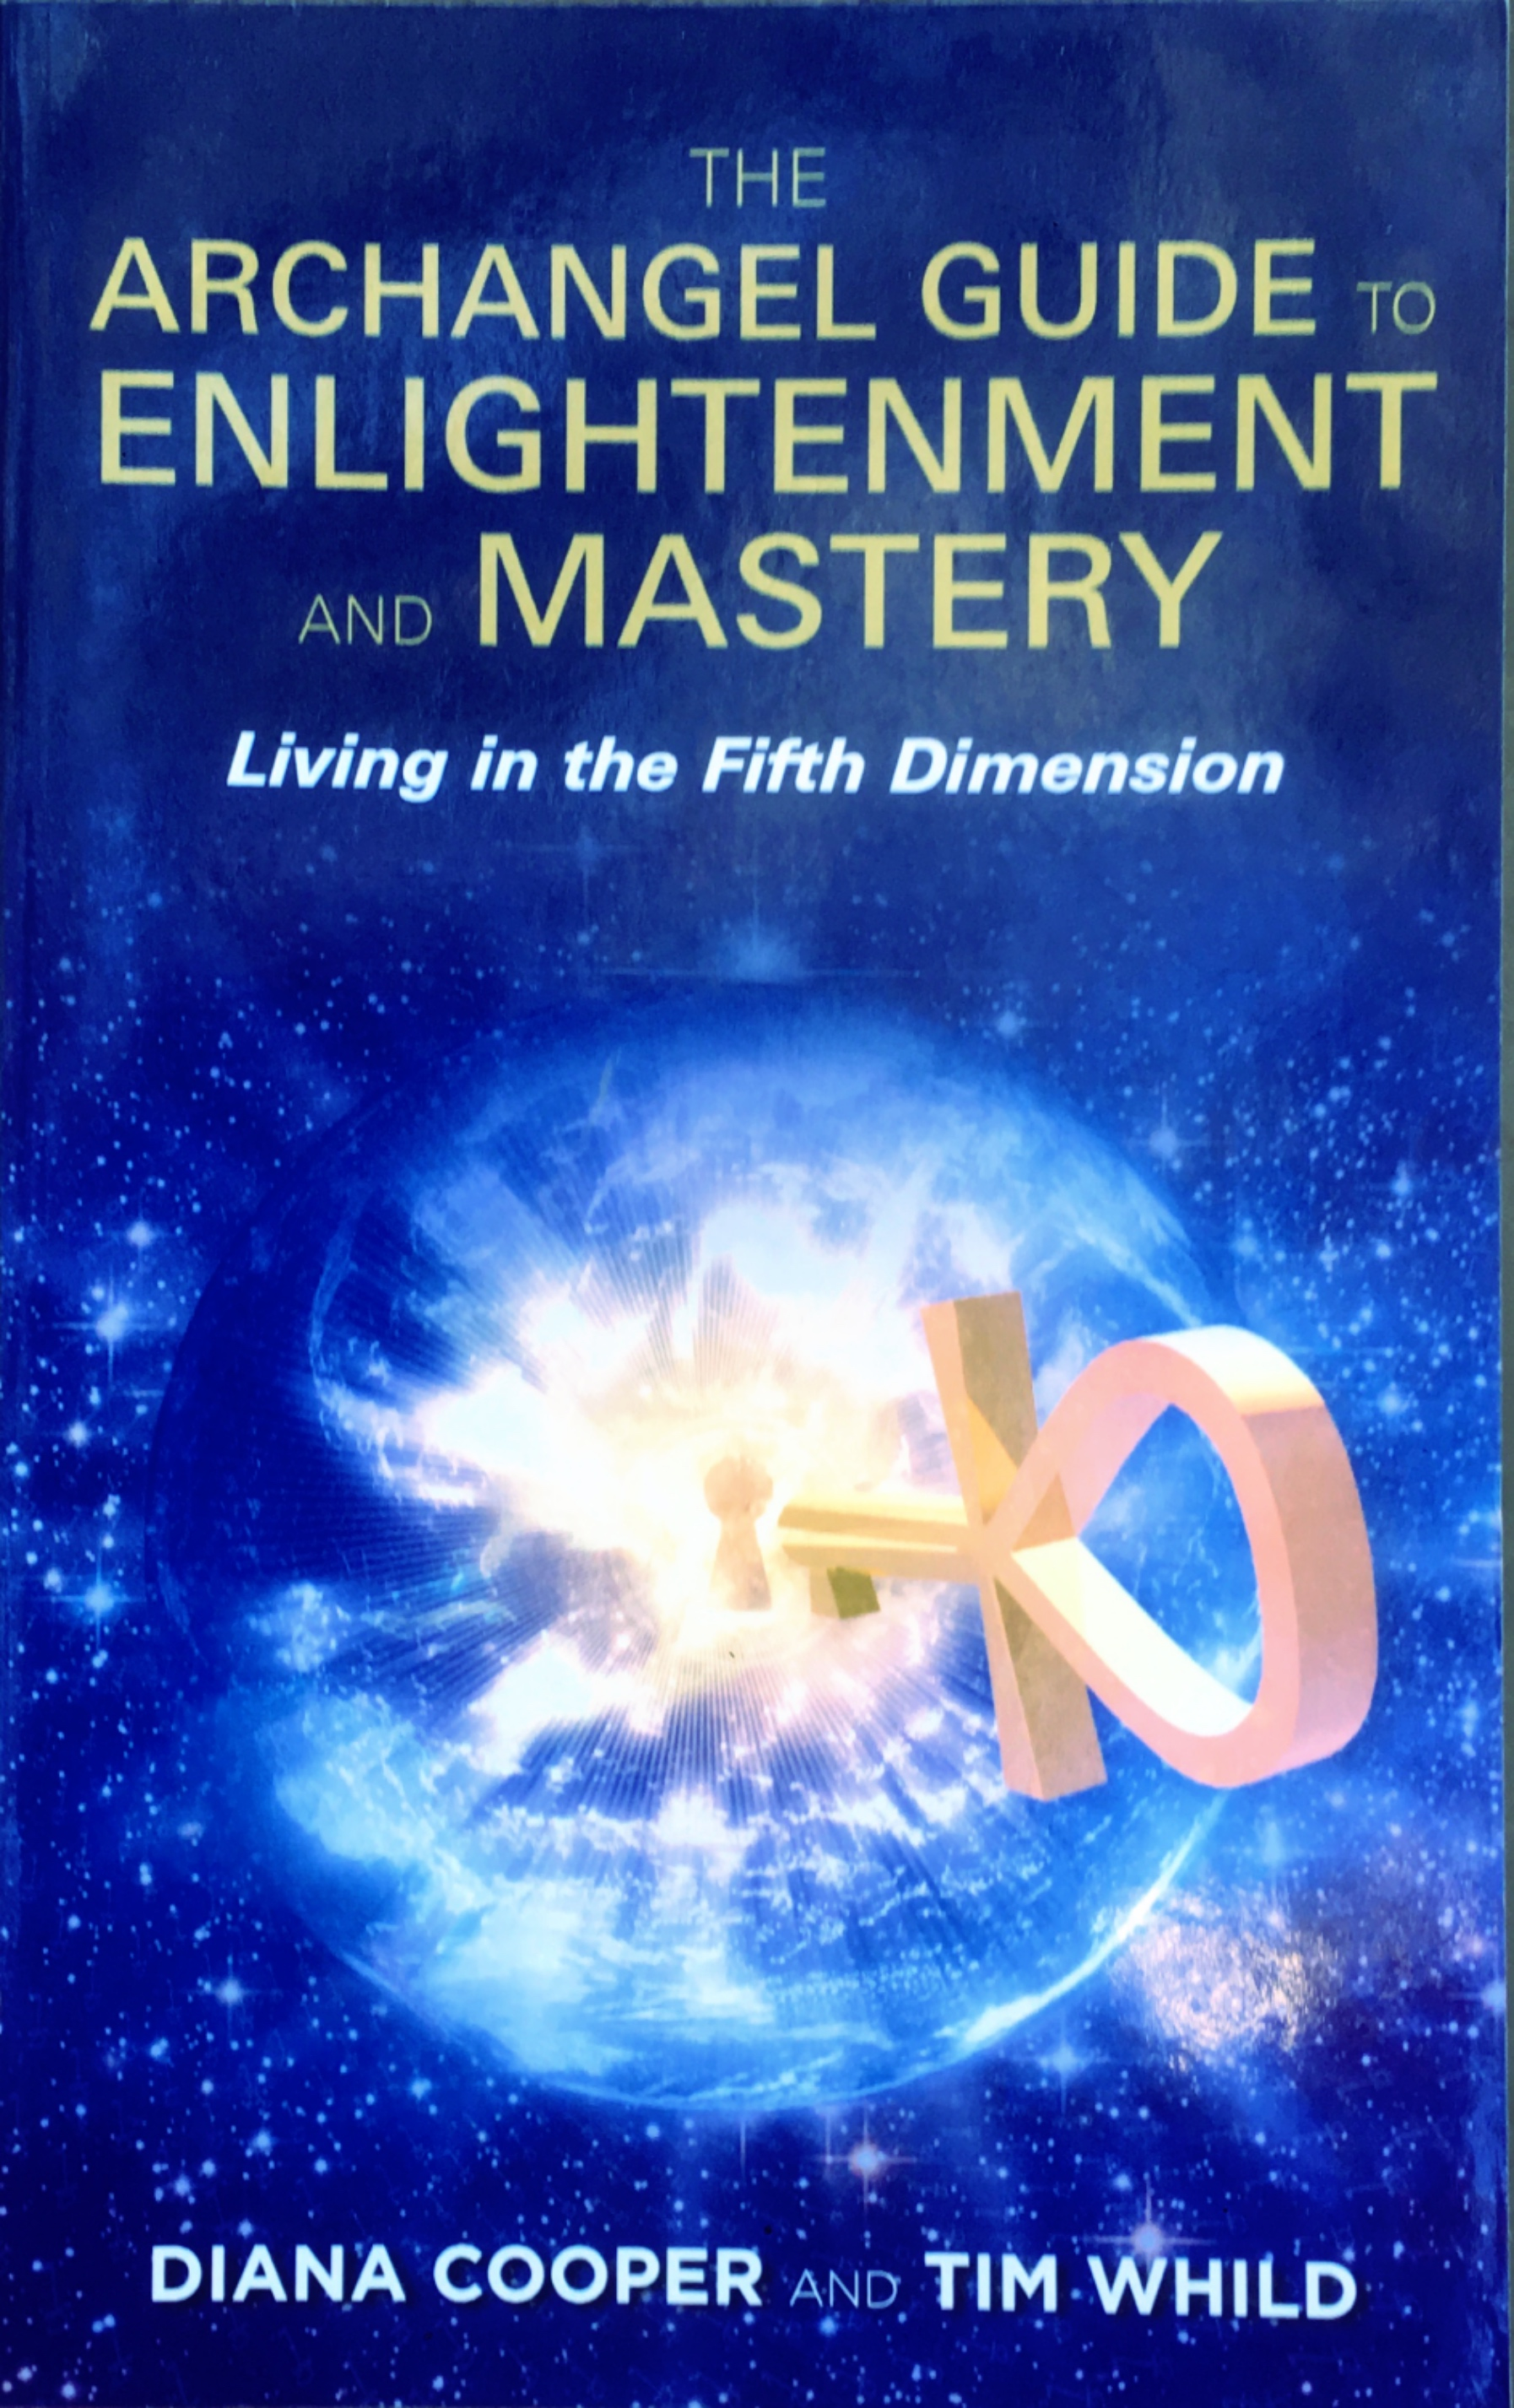 The archangel guide to engligtenment and mastery BOOK.jpg